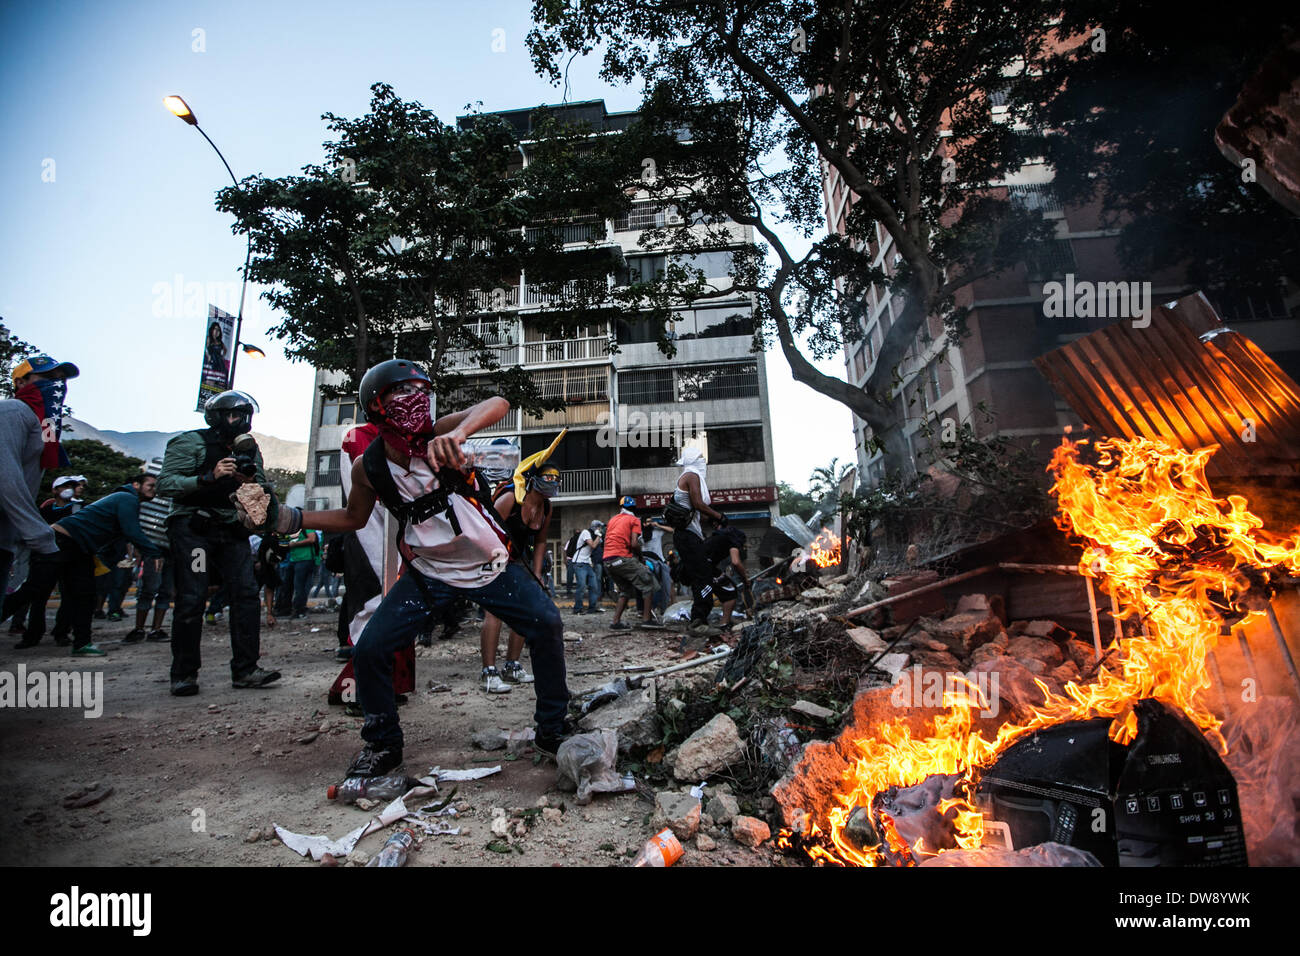 Caracas, Venezuela. 3e Mar, 2014. Les manifestants lancer des pierres dans un affrontement contre la Police nationale bolivarienne au cours d'une manifestation à Altamira, à l'Est de Caracas, Venezuela, le 3 mars 2014. Credit : Boris Vergara/Xinhua/Alamy Live News Photo Stock